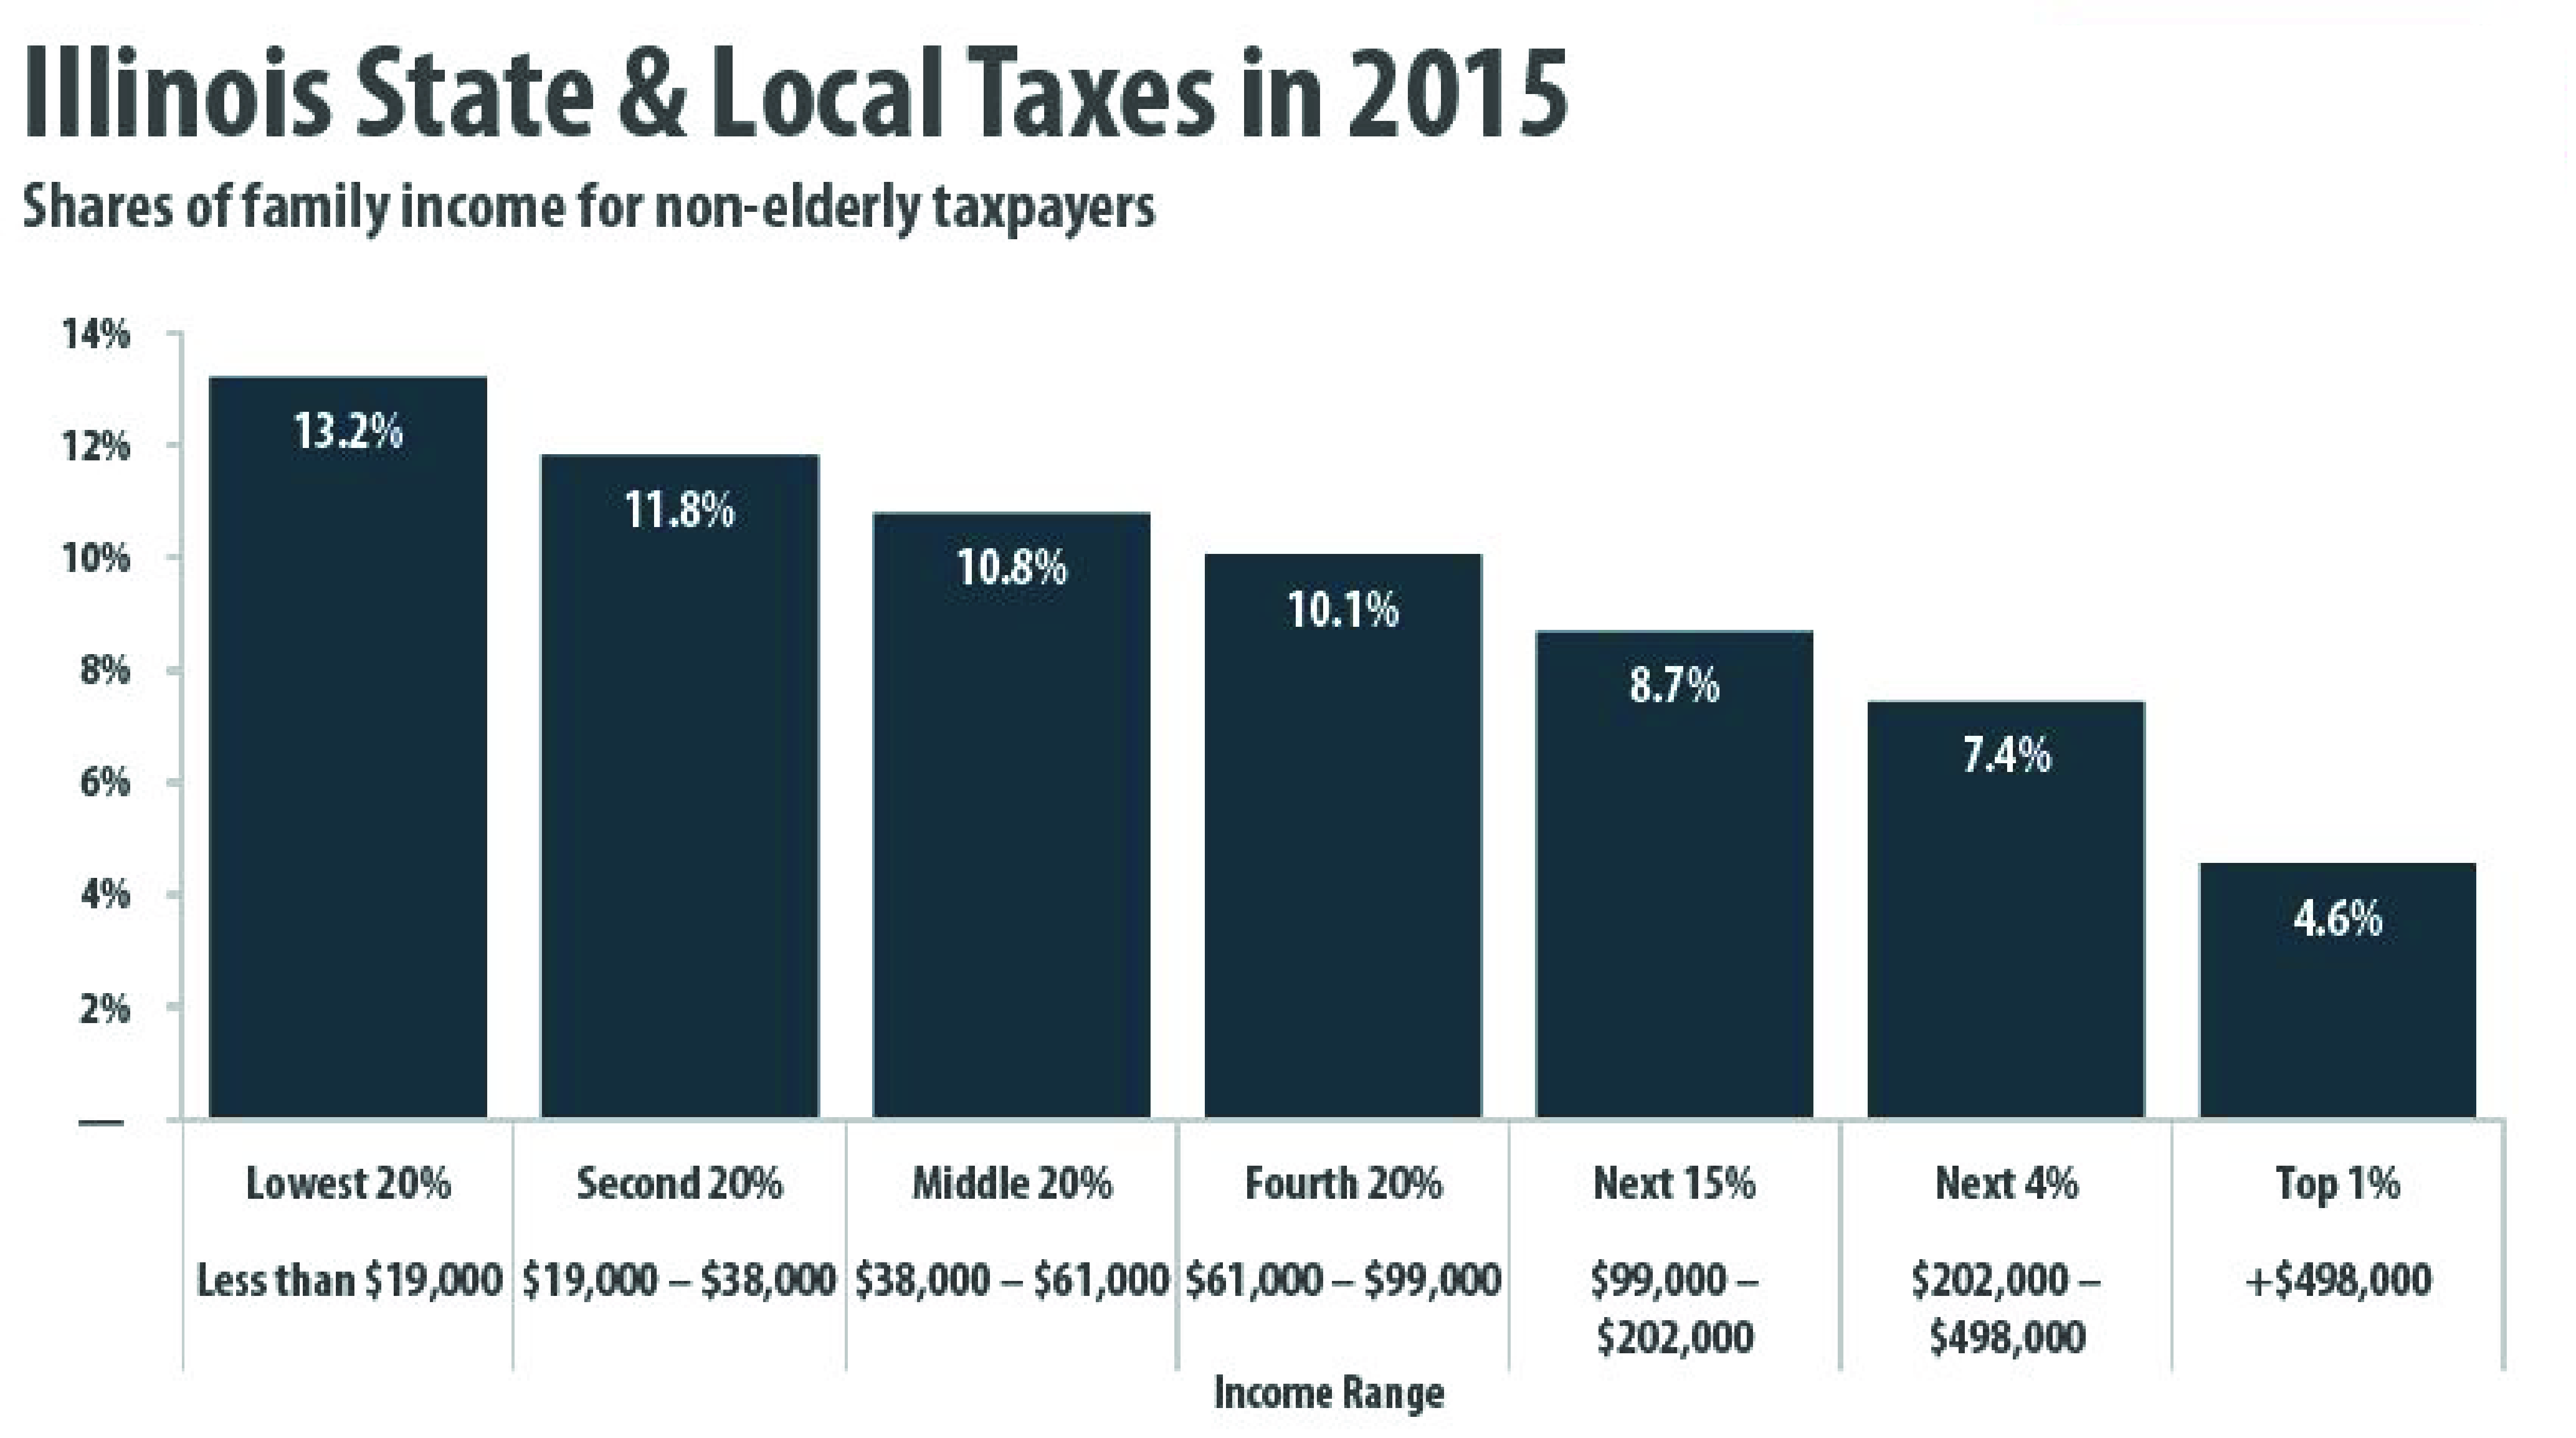 Il illinois corporate income tax rate 2015 - Il Illinois Corporate Income Tax Rate 2015 Illinois Corporate Income Tax 2017 Itep Who Pays